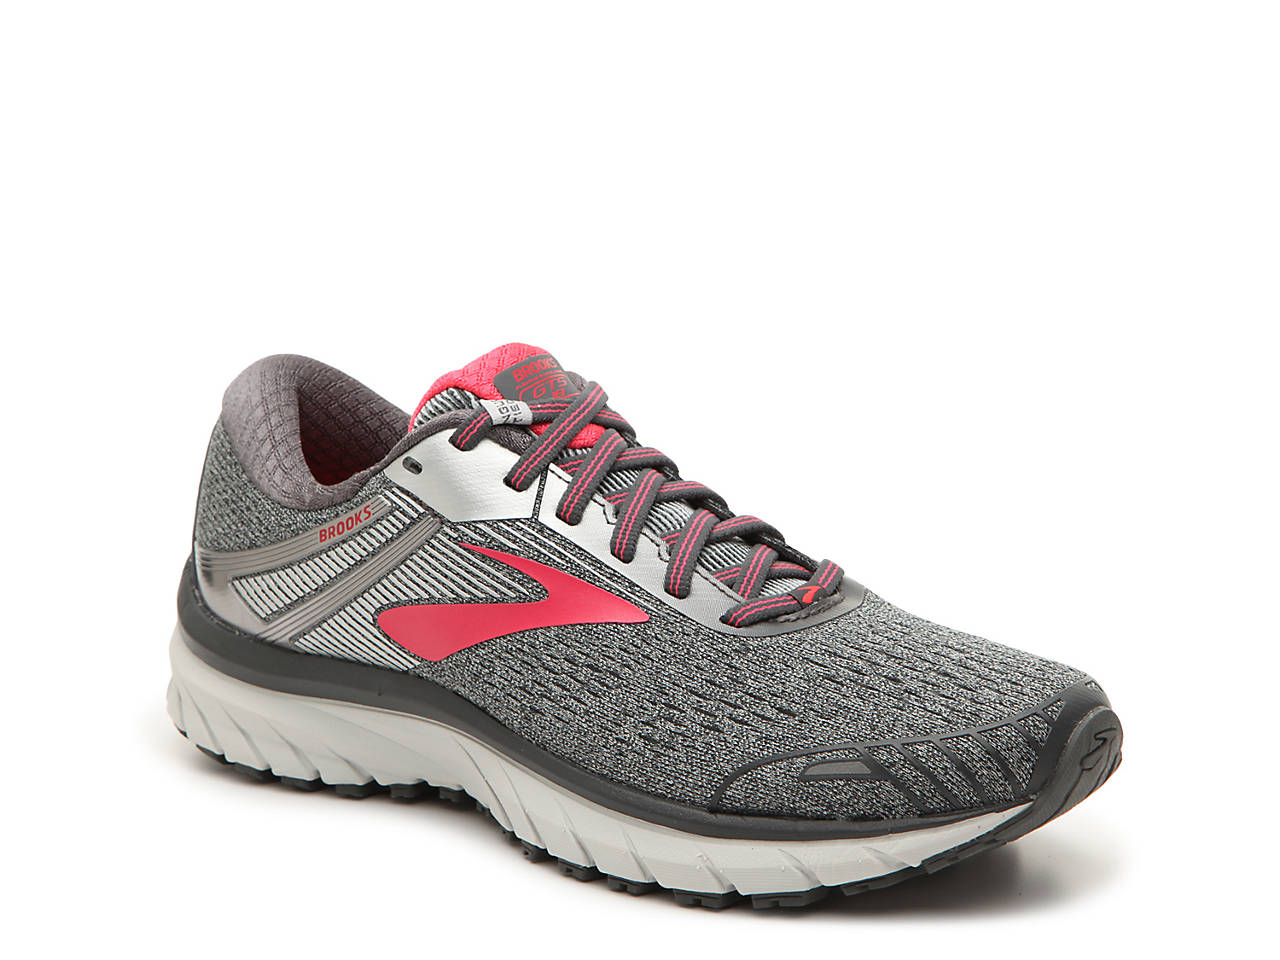 a37aa06e3281d Brooks Adrenaline GTS 18 Performance Running Shoe - Women s Women s Shoes